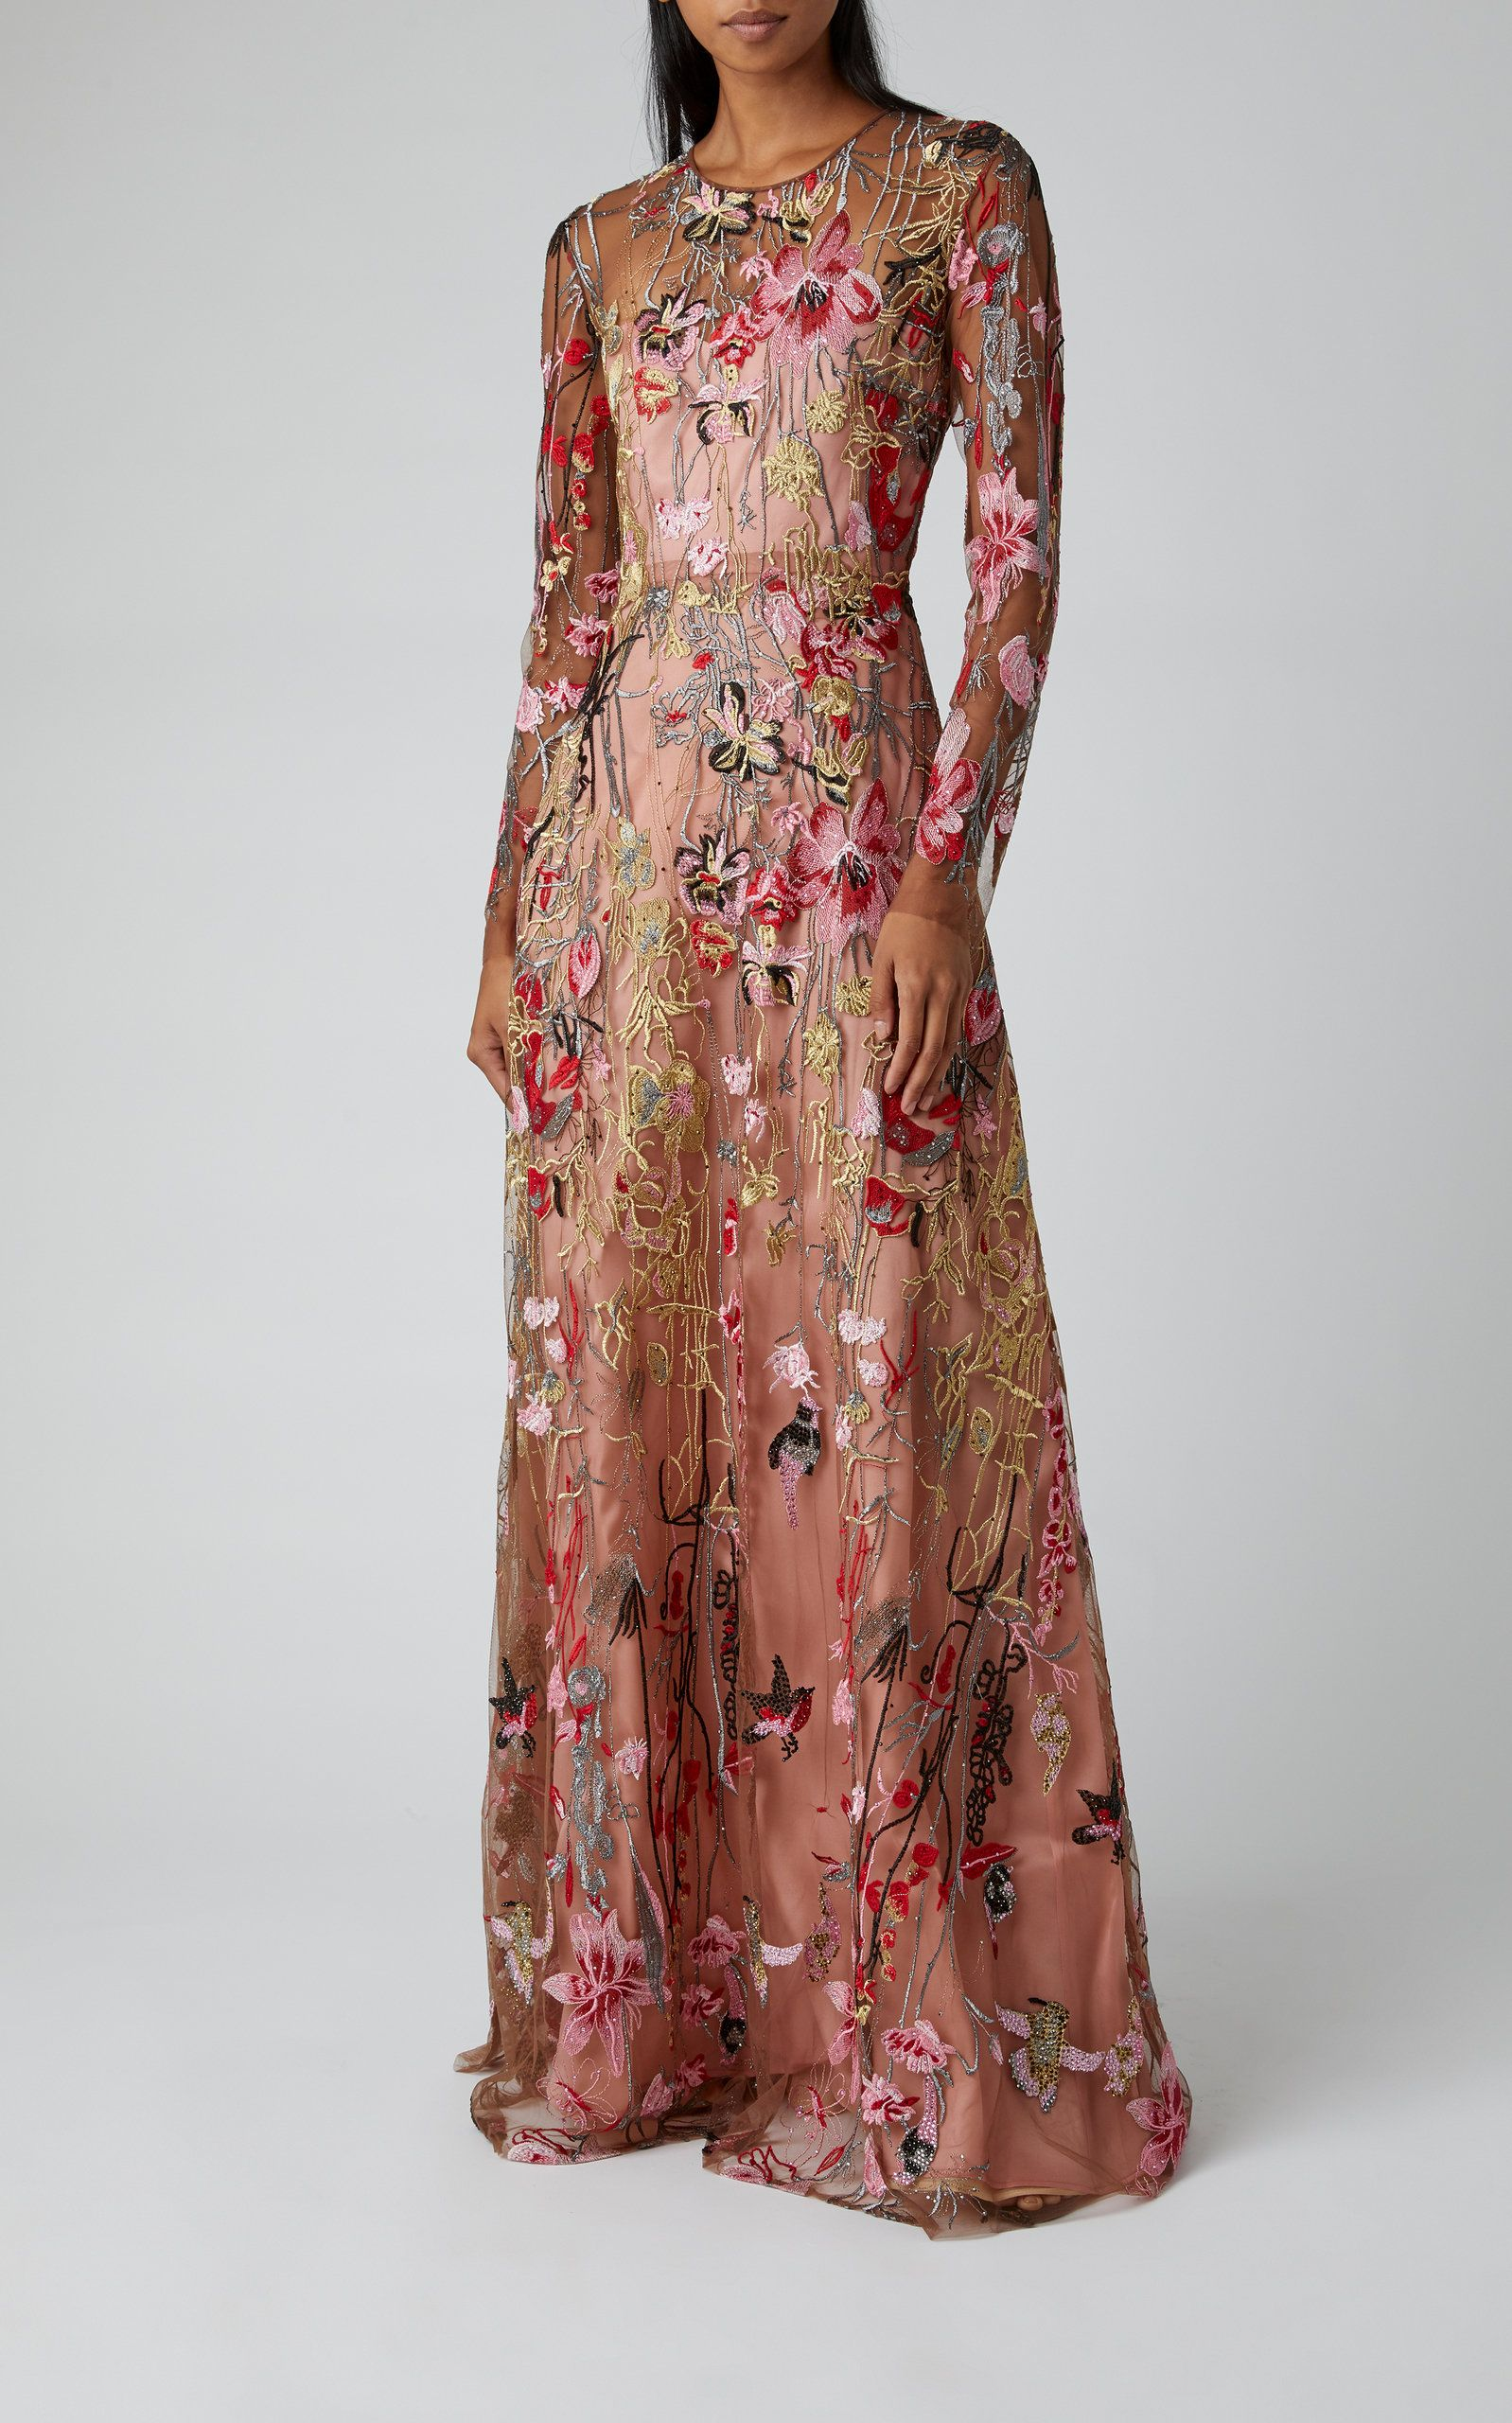 Naeem Khan Multicolor Floral Embroidered Gown Maxi Dress With Sleeves Long Sleeve Maxi Dress Embroidered Gown [ 2560 x 1598 Pixel ]